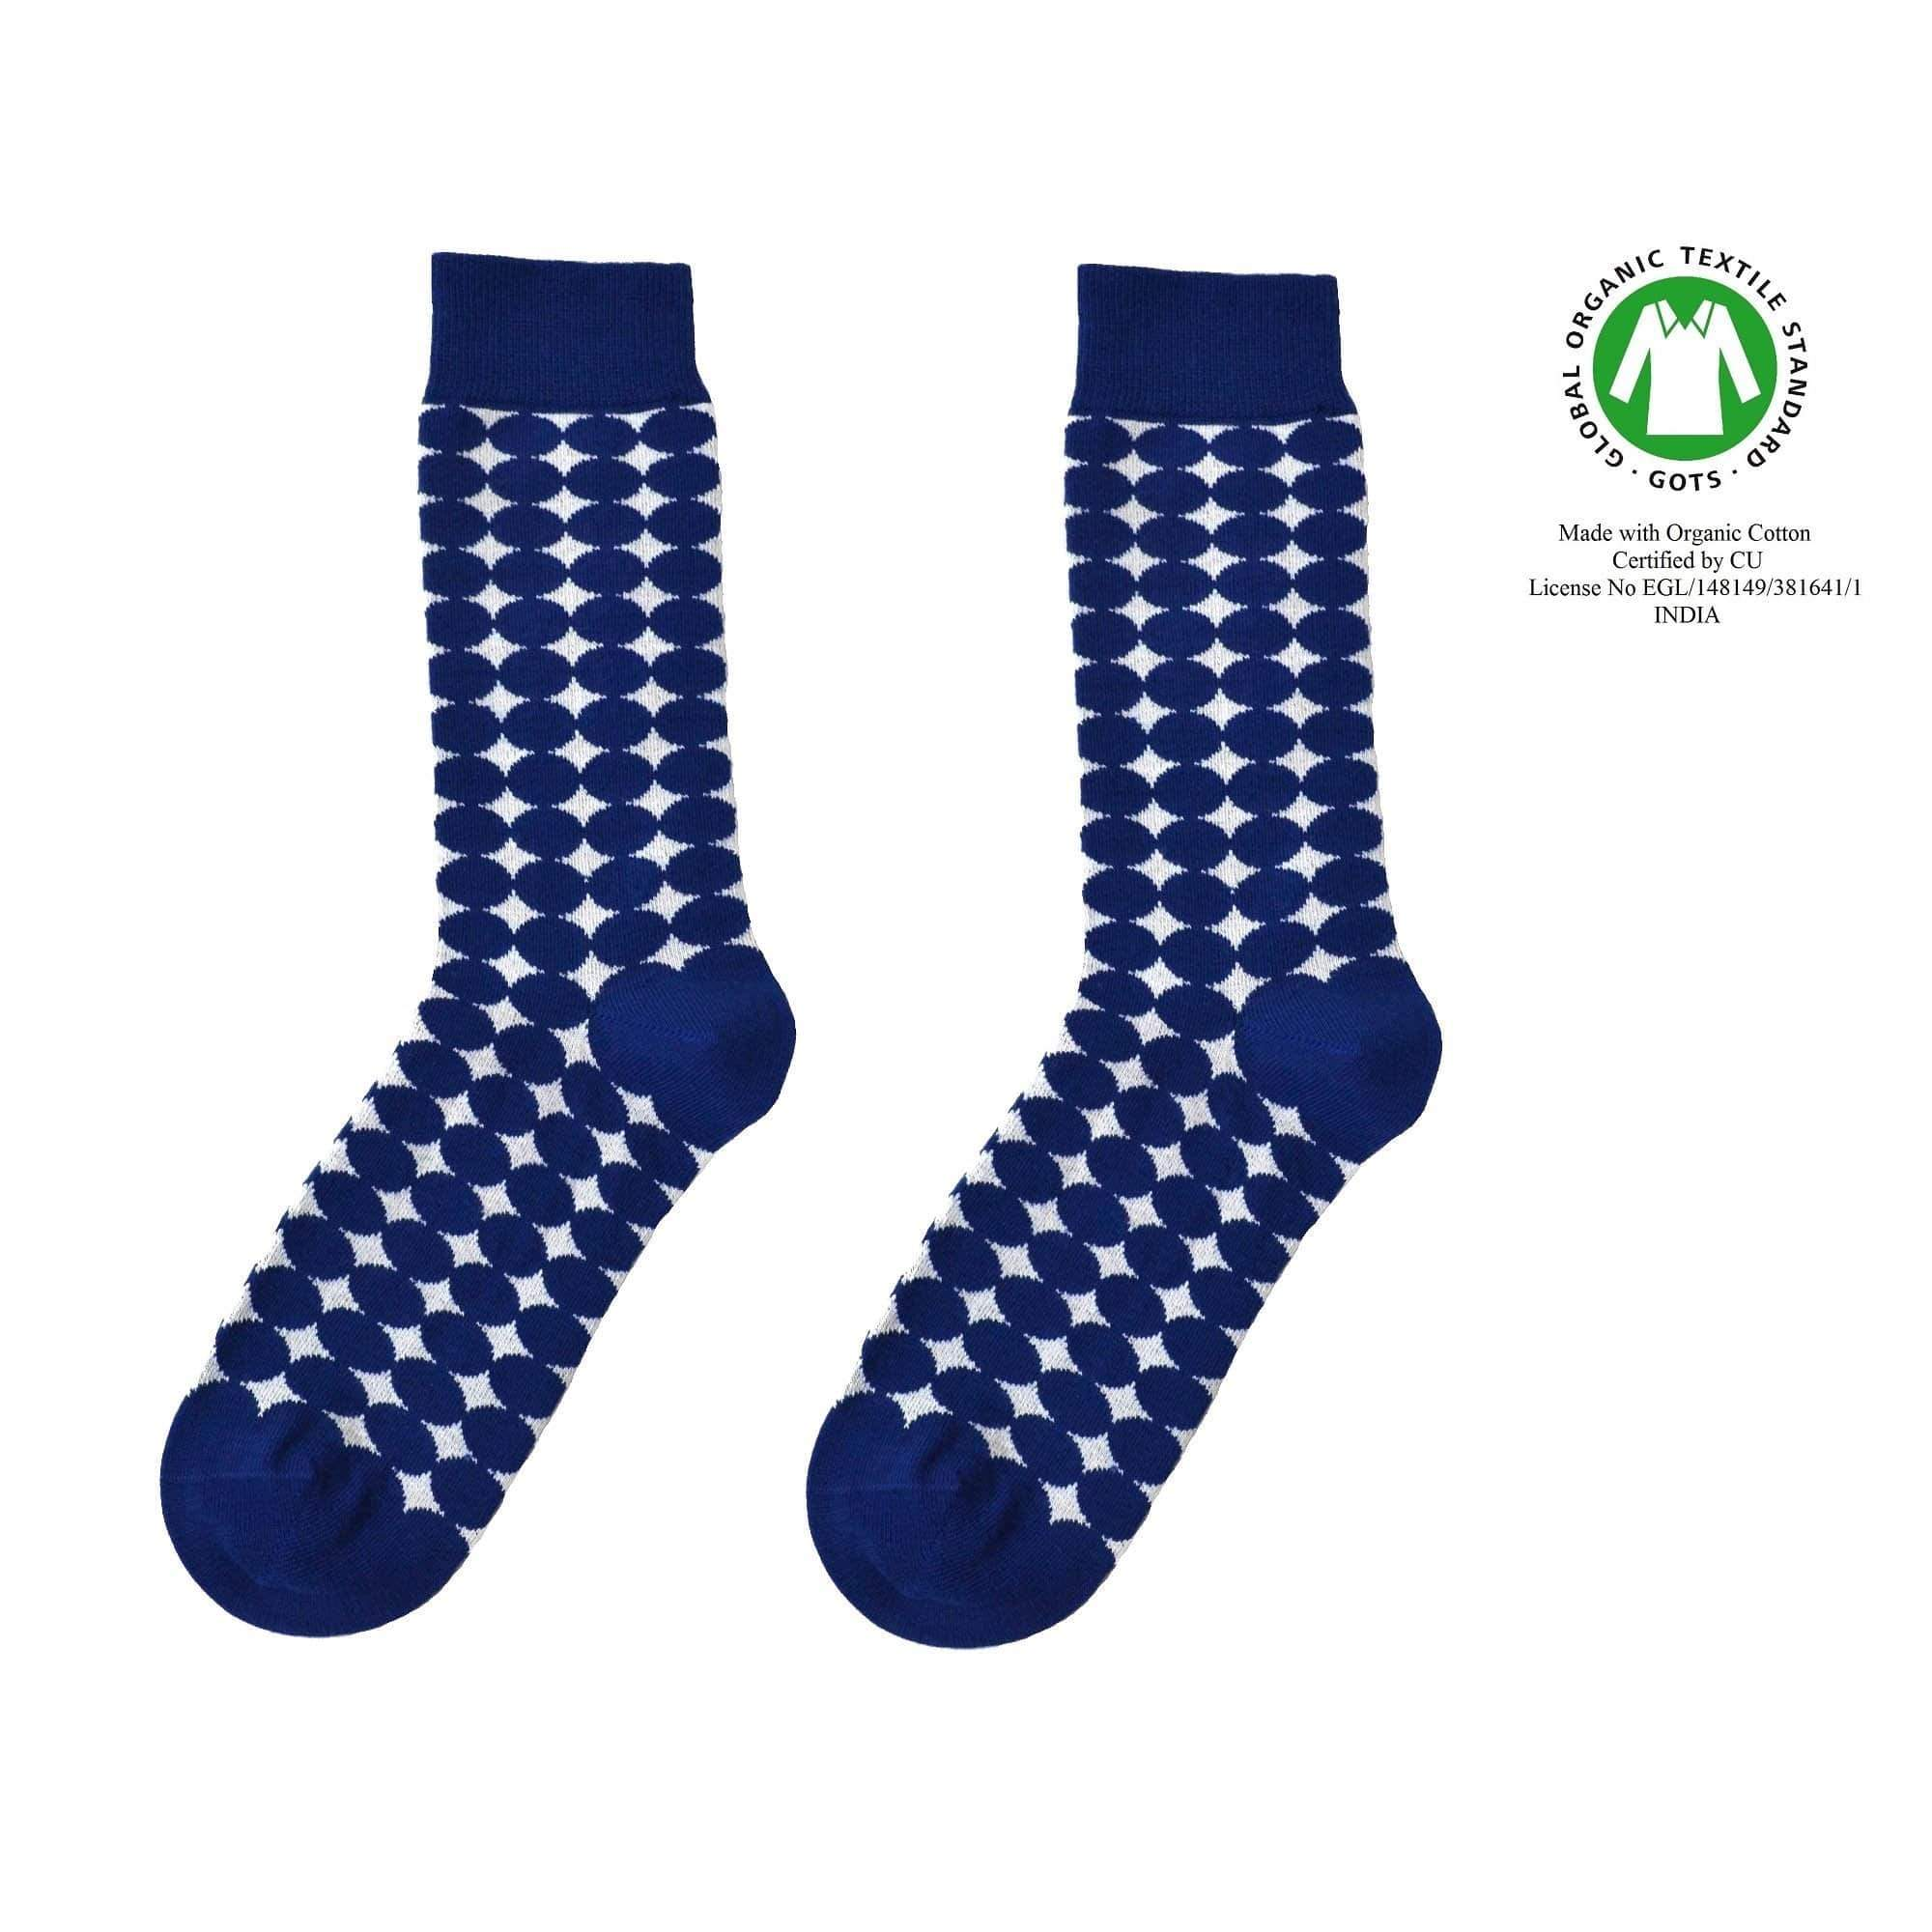 Organic Socks of Sweden sock Forsberg Socks. Organic Cotton. sustainable fashion ethical fashion